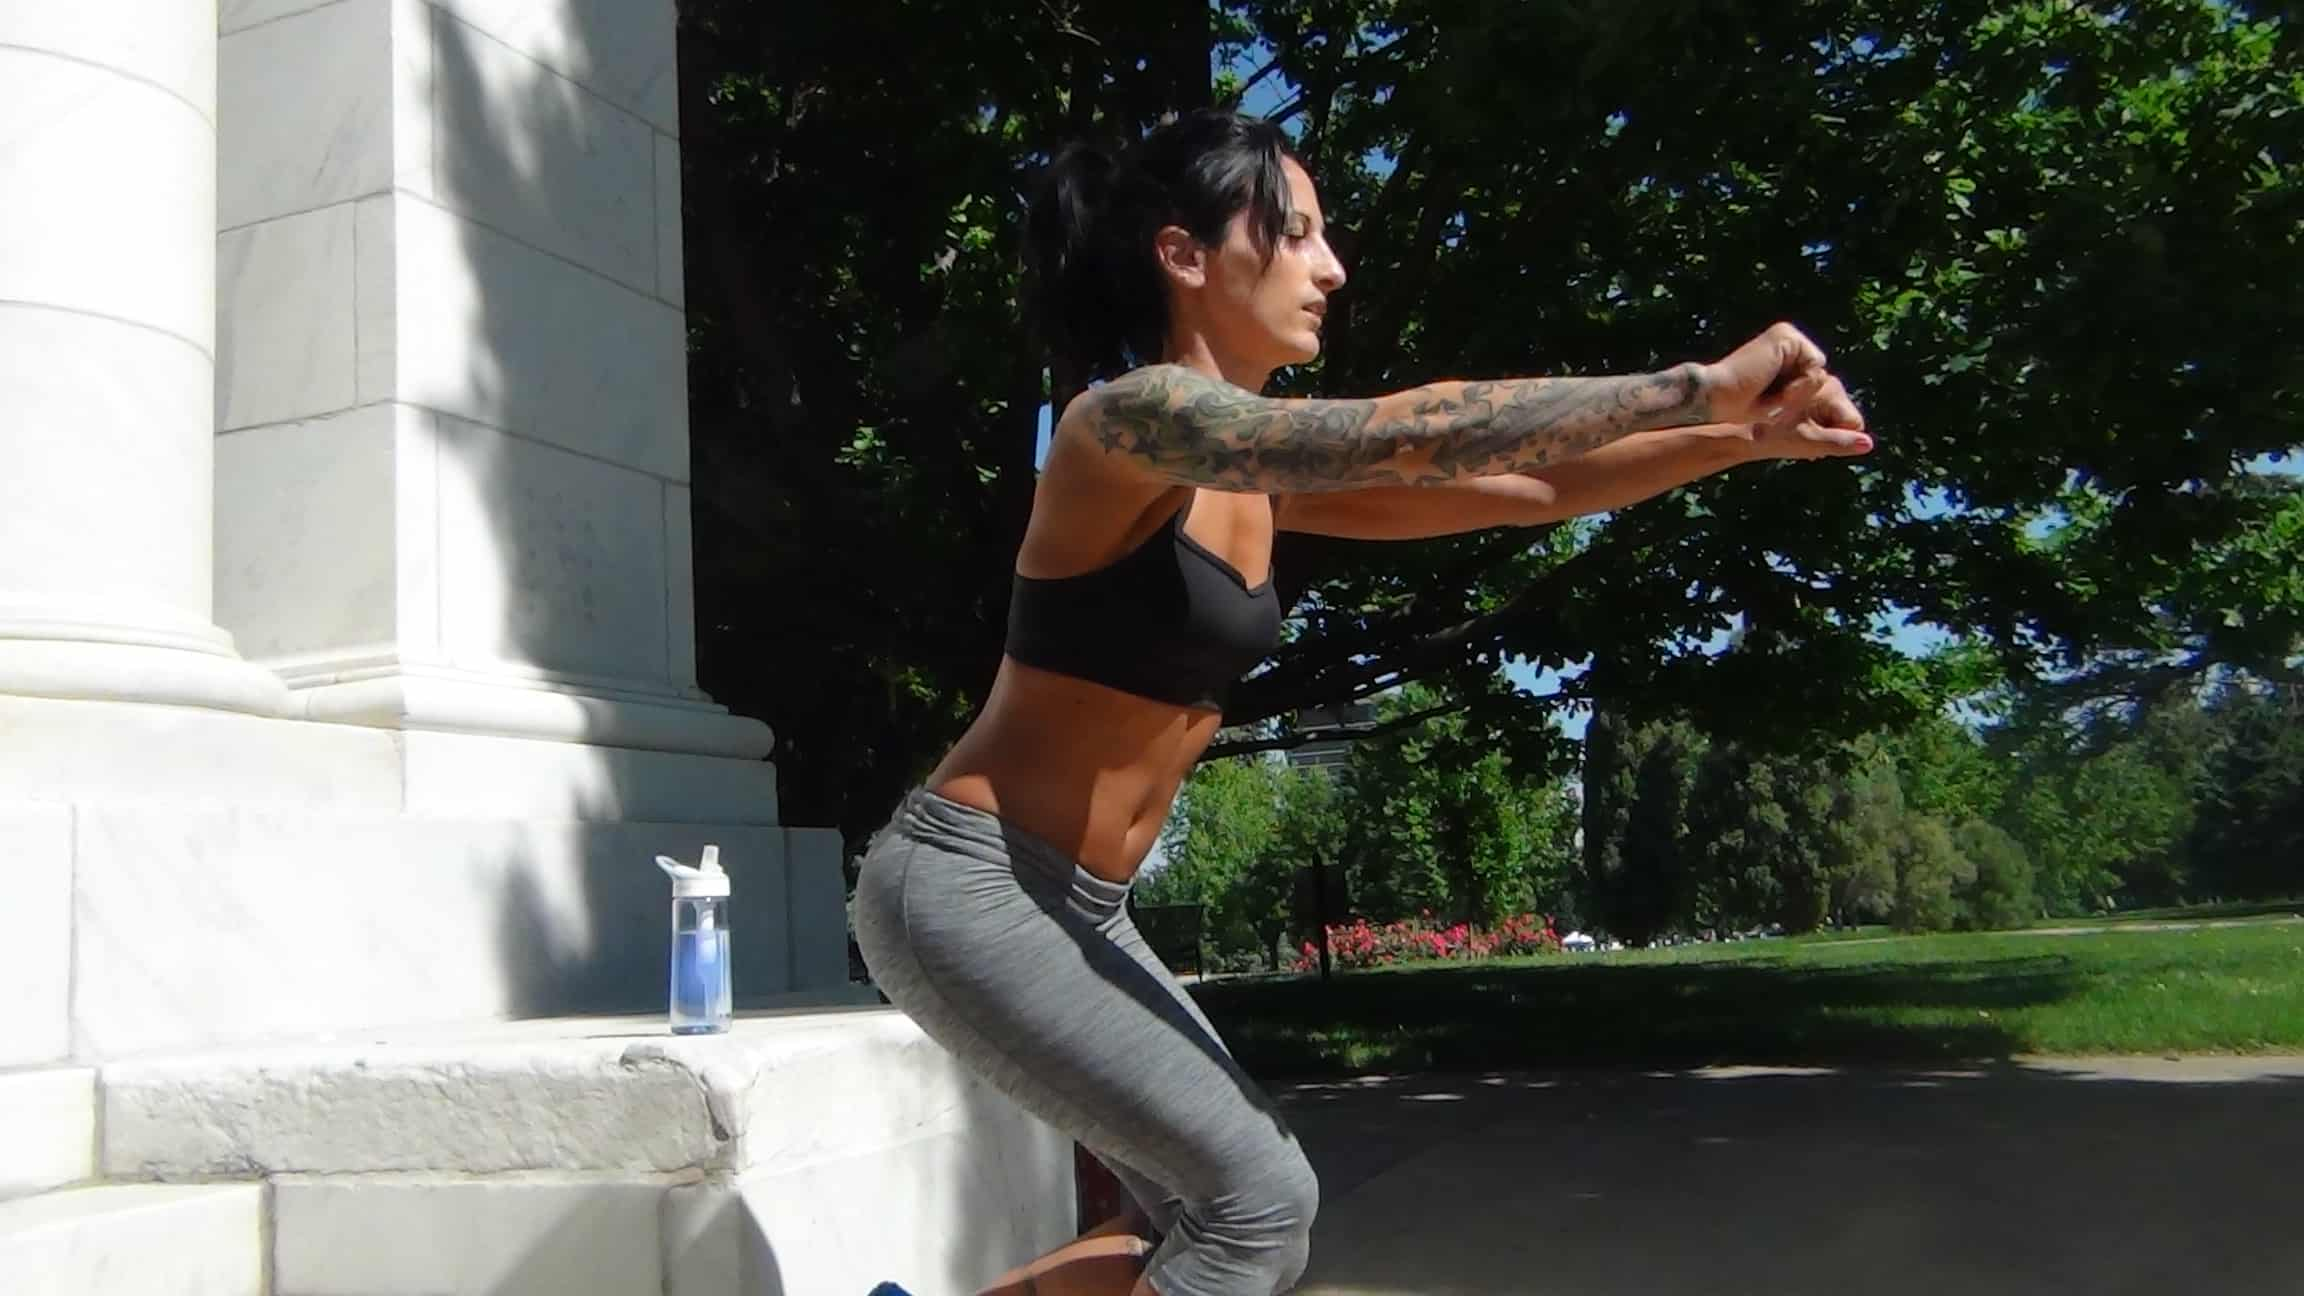 Anywhere Workout Series: Part 1 of 3